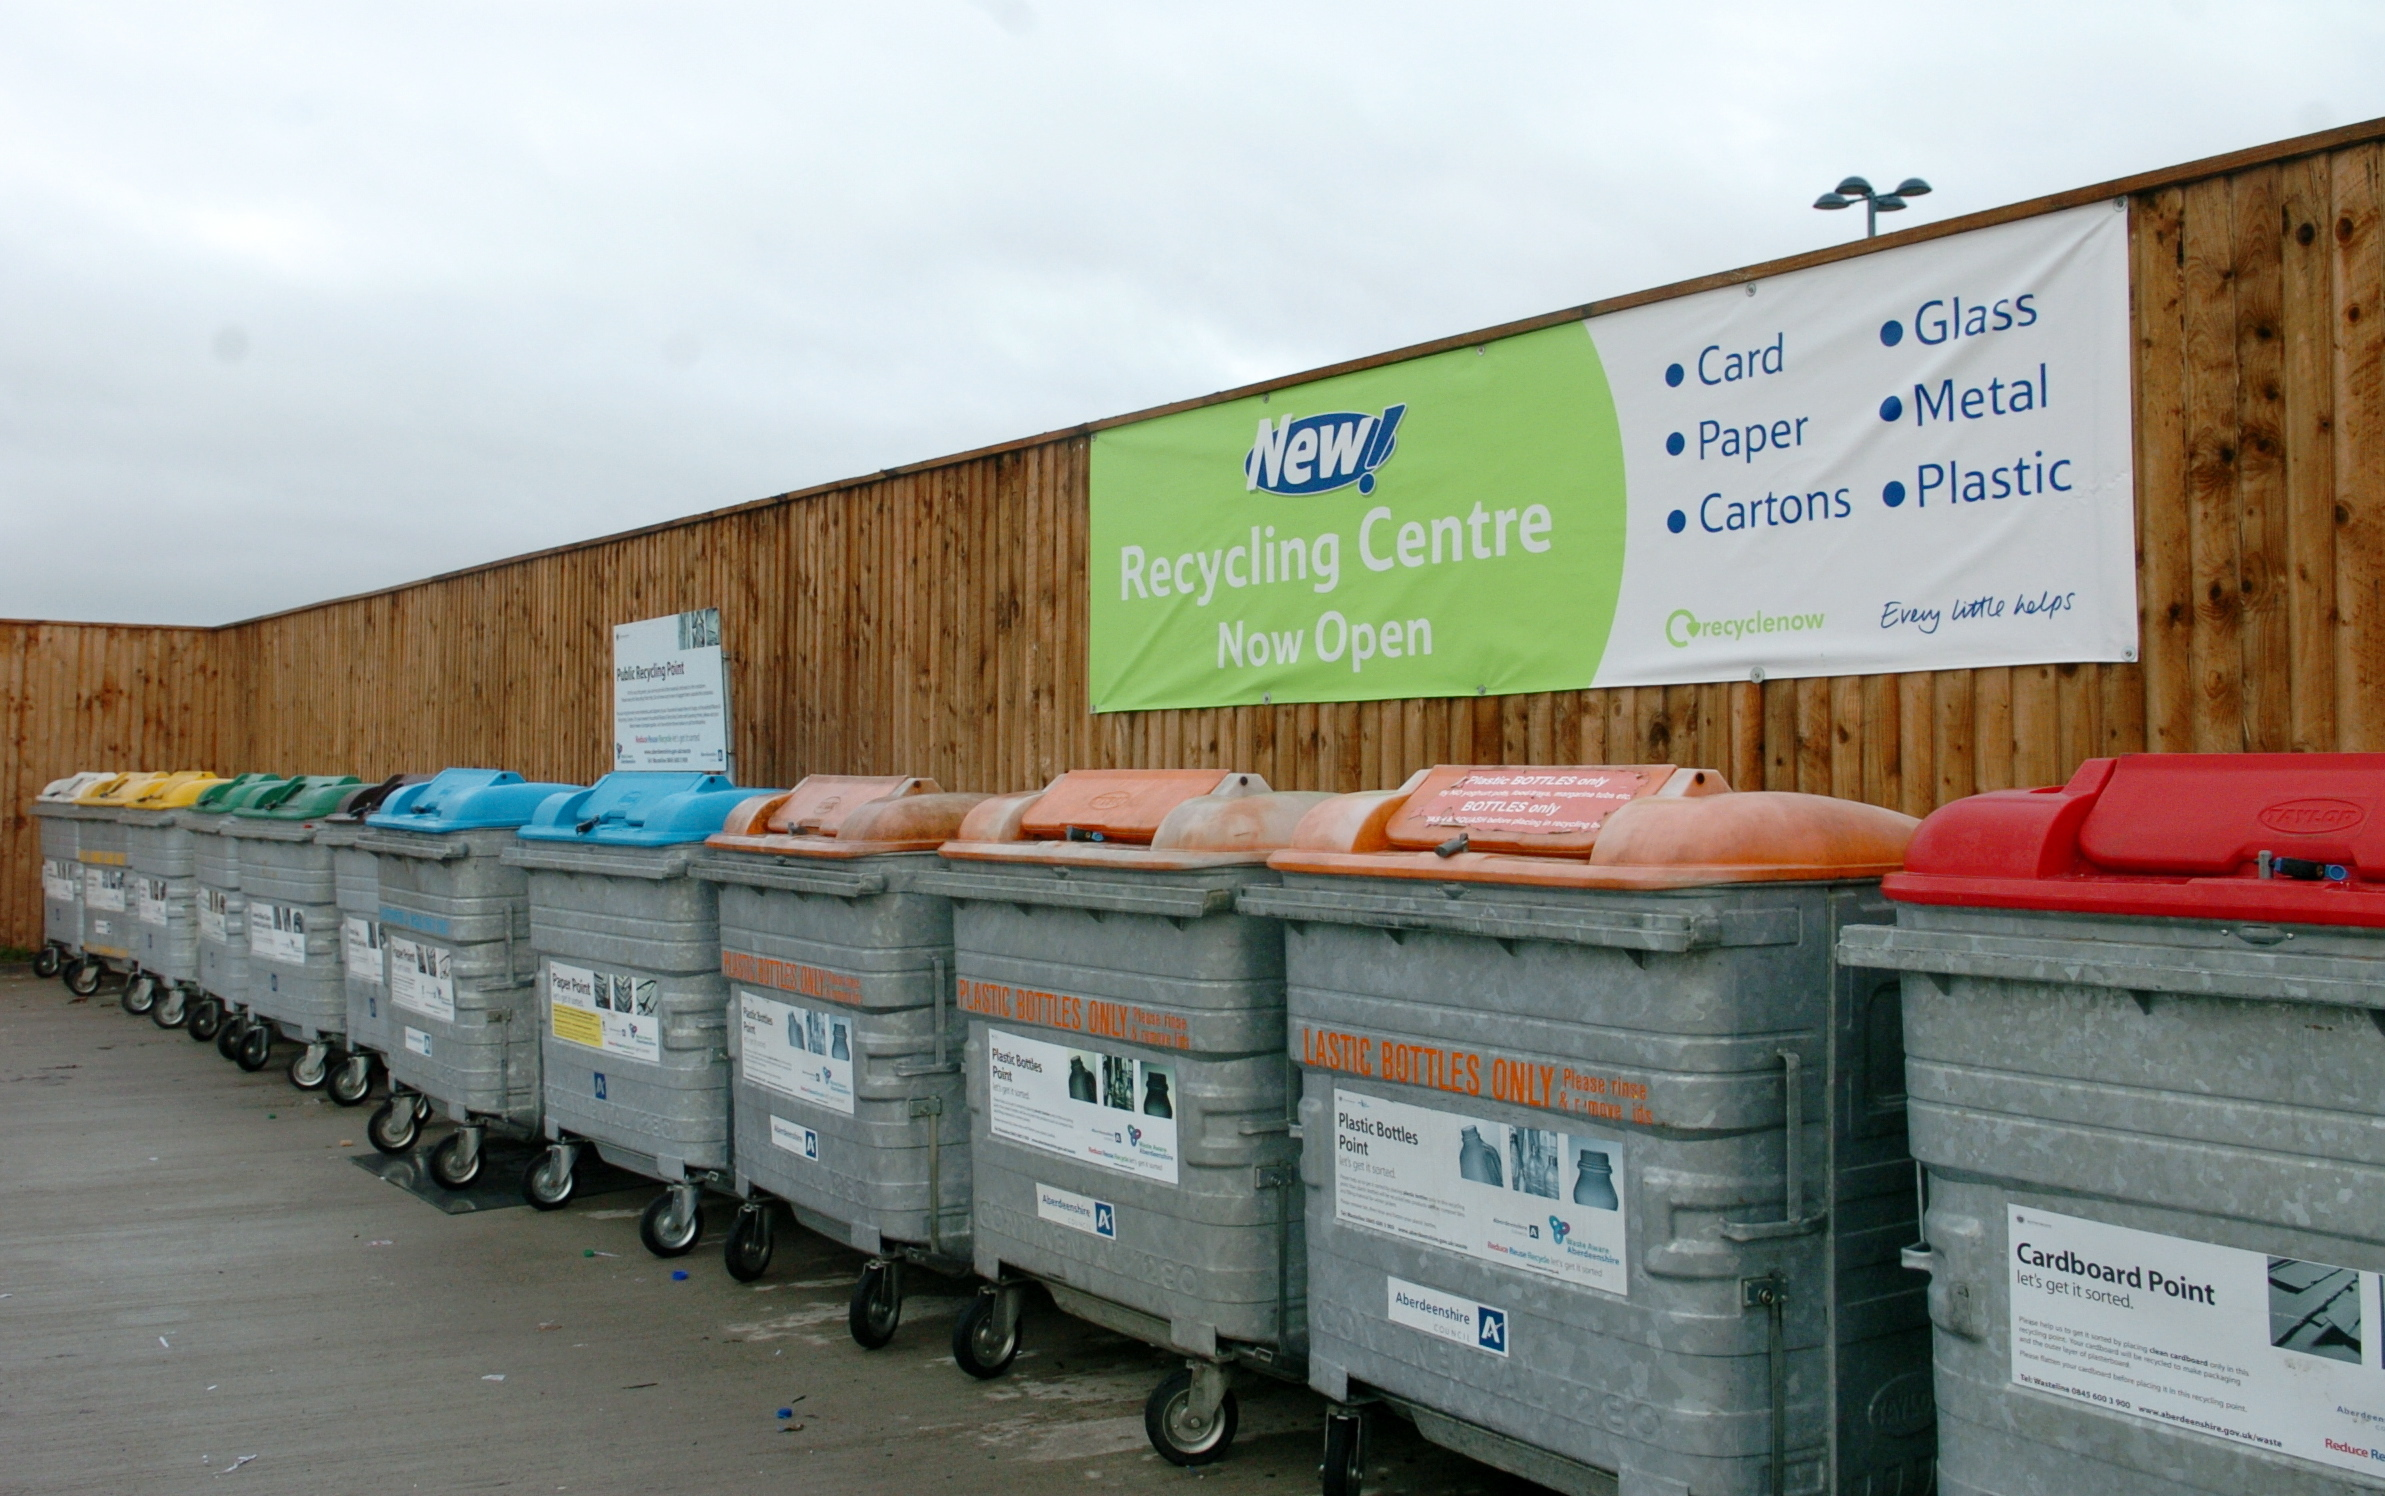 Waste and recycling services in Aberdeenshire are currently shut